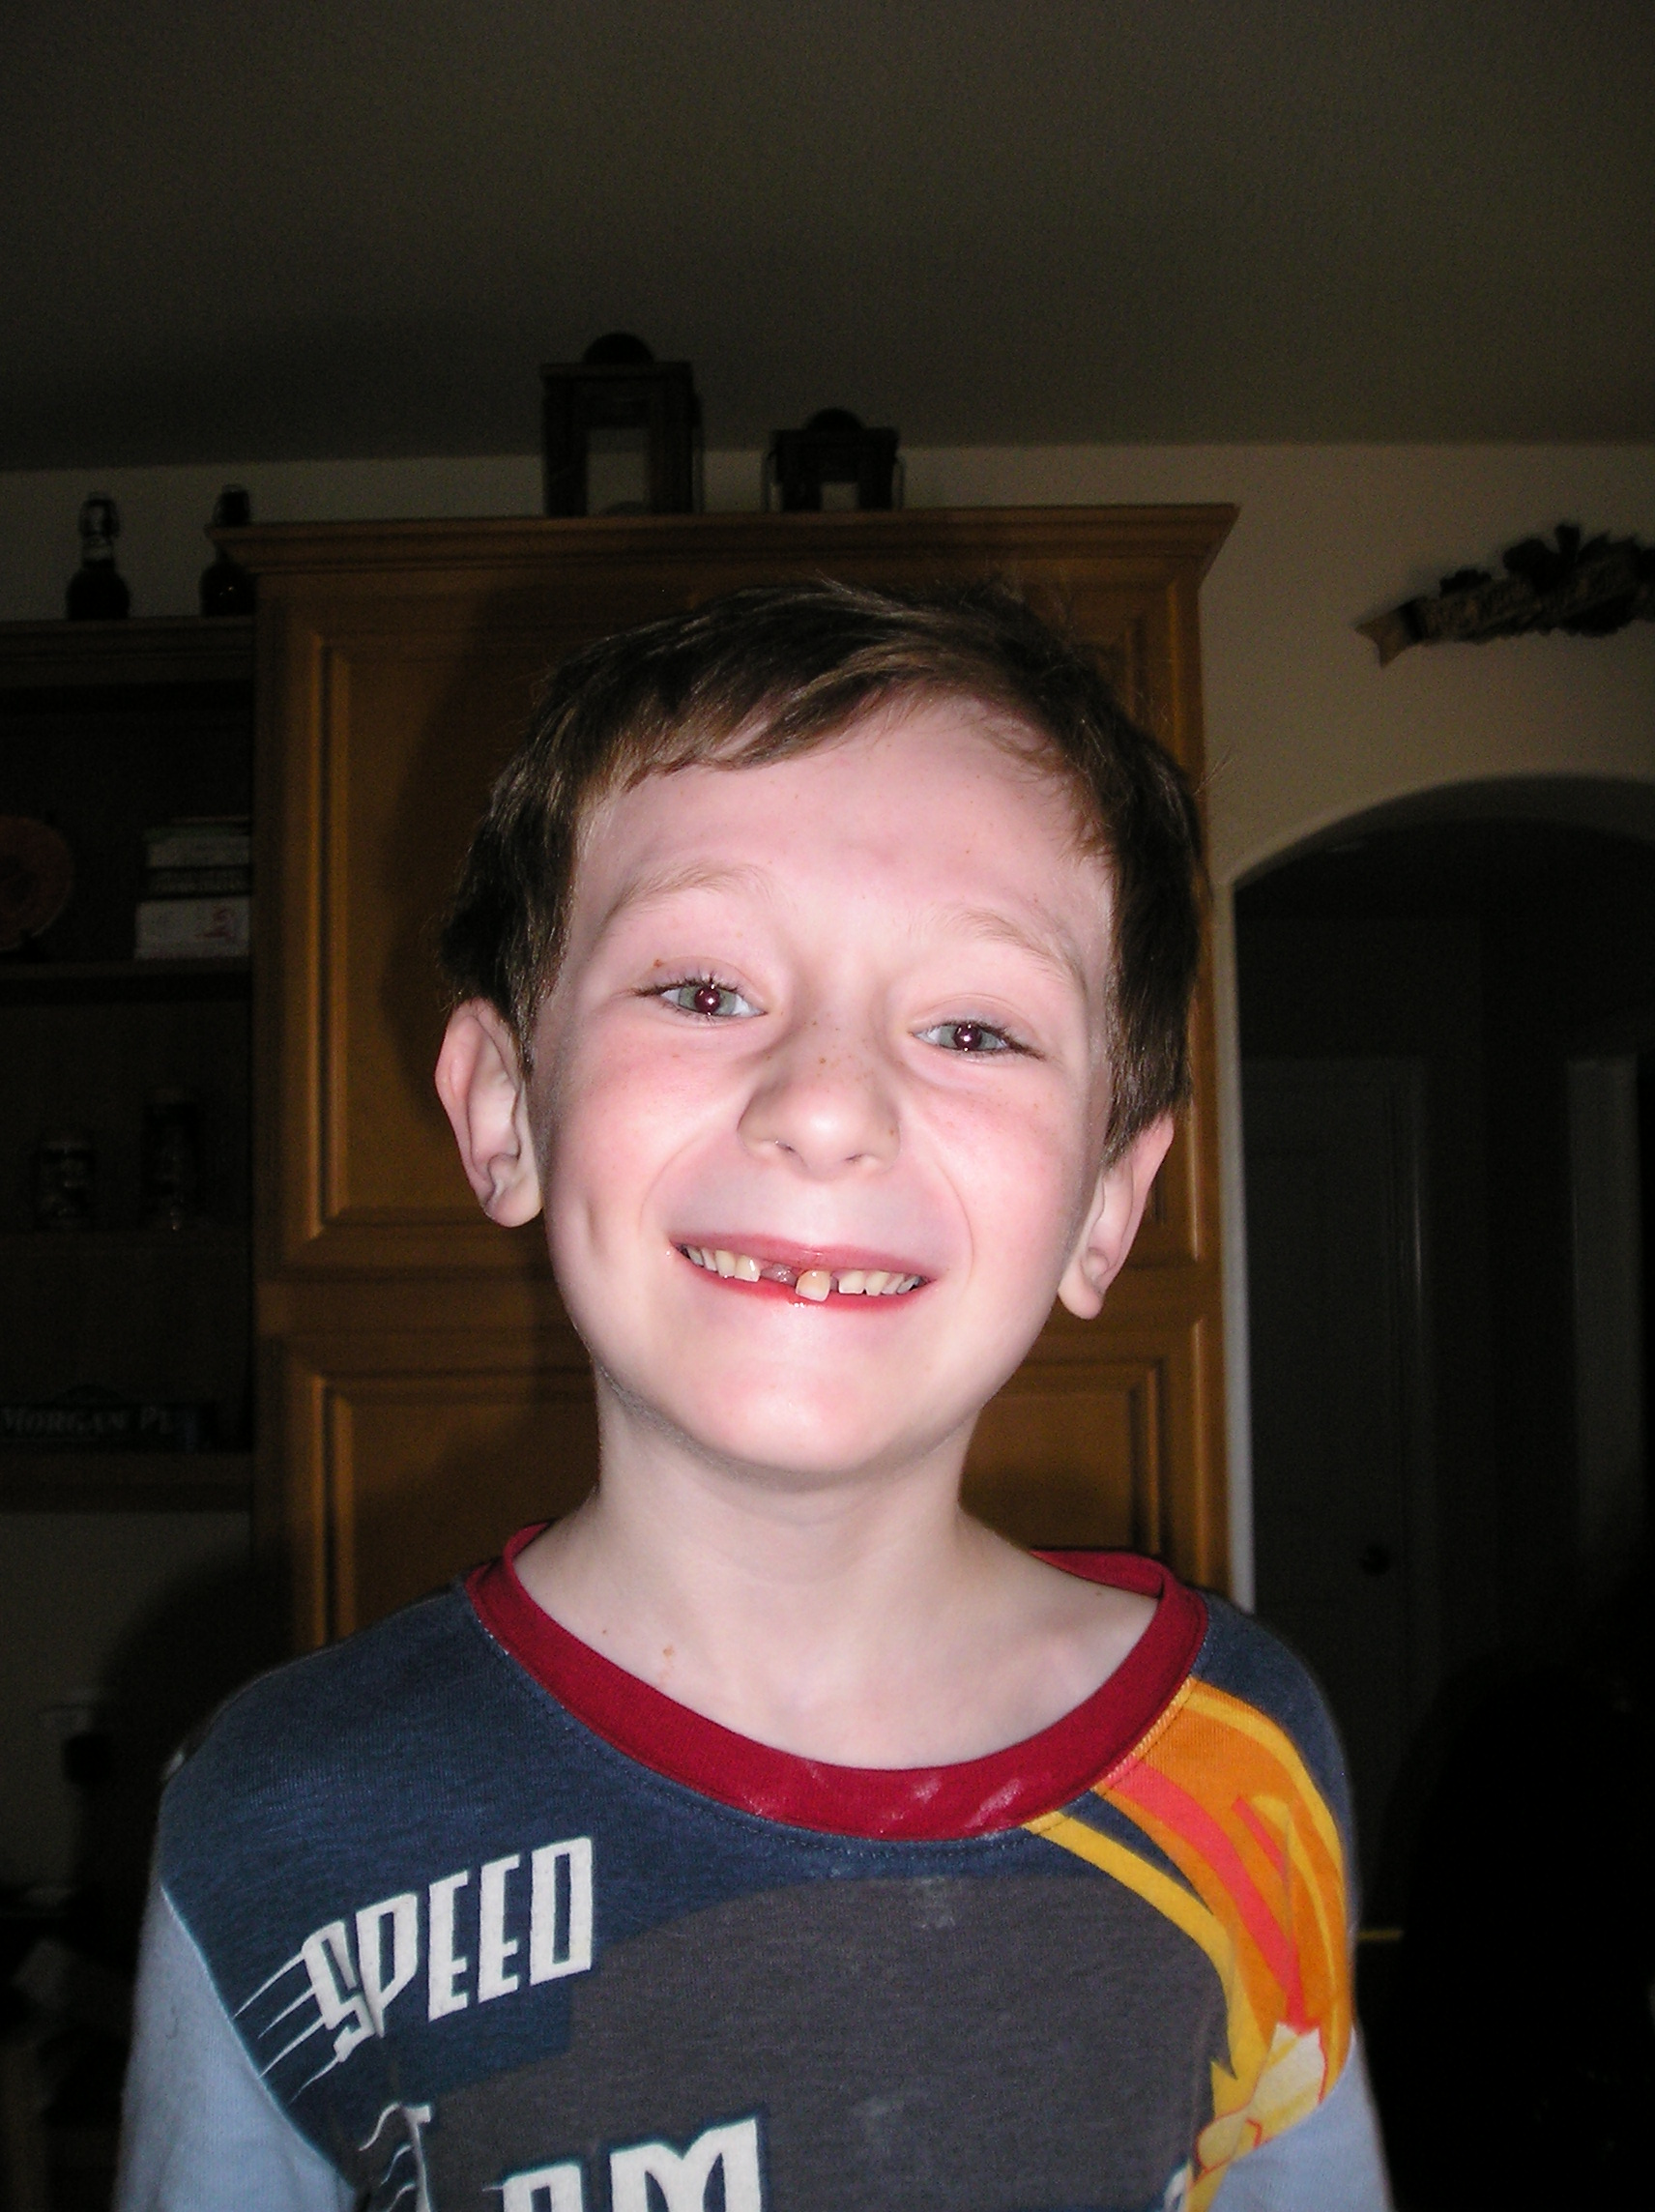 Shane loses a tooth